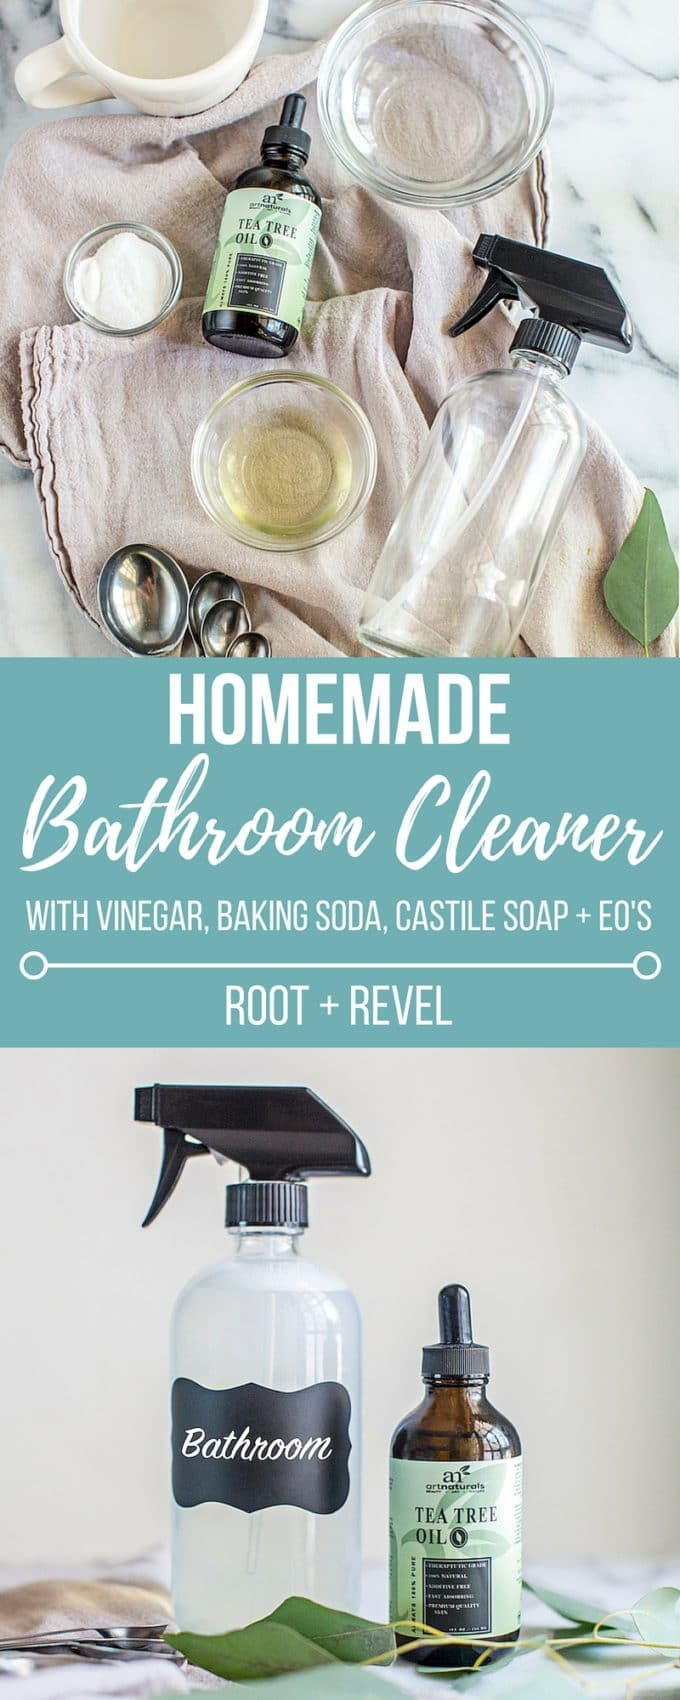 homemade bathroom cleaner root revel